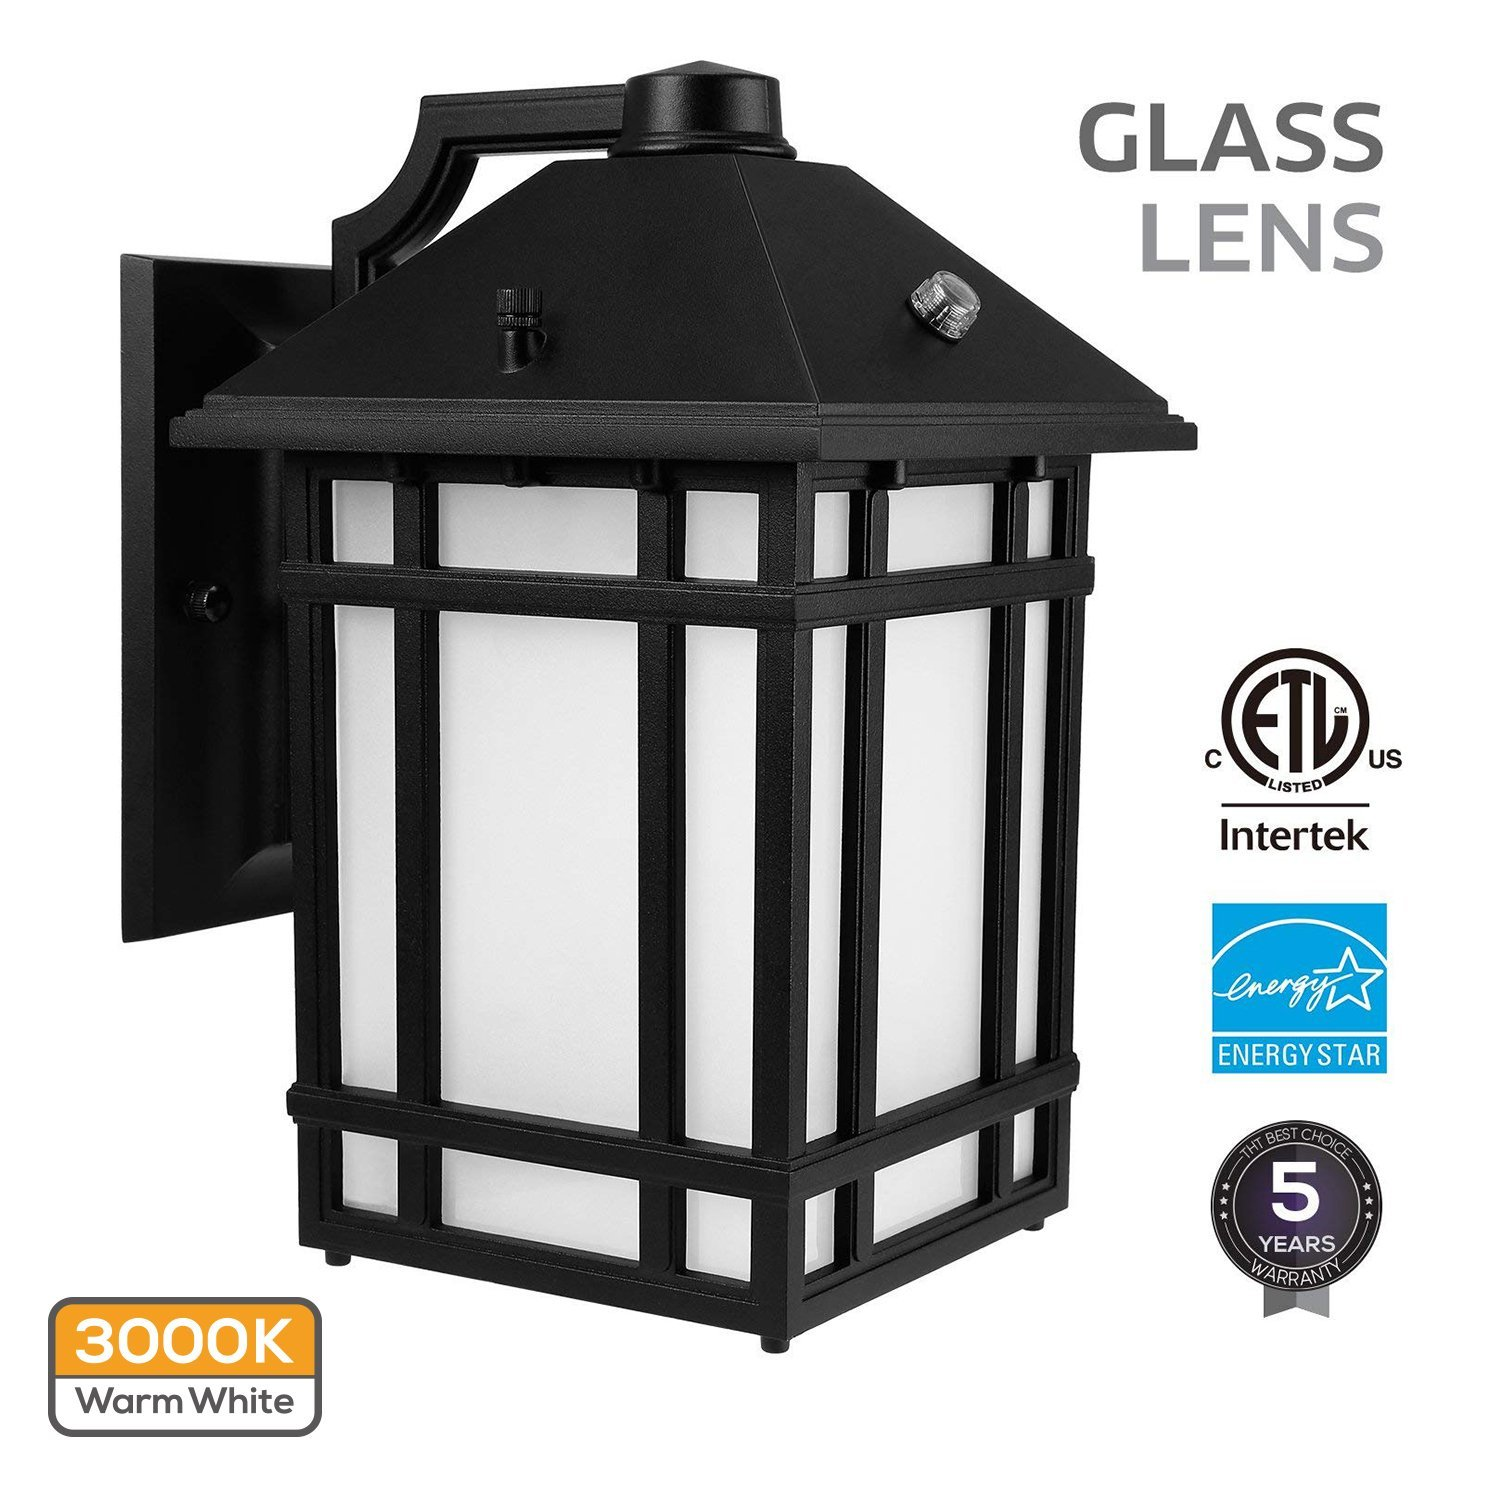 LED Outdoor Wall Lantern with Dusk to Dawn Photocell, 14W (60W Equiv.), Glass Lens, Energy Star & ETL Listed Exterior Wall Mount Lighting Fixture, 3000K Warm White, 1000lm, 5 Years Warranty